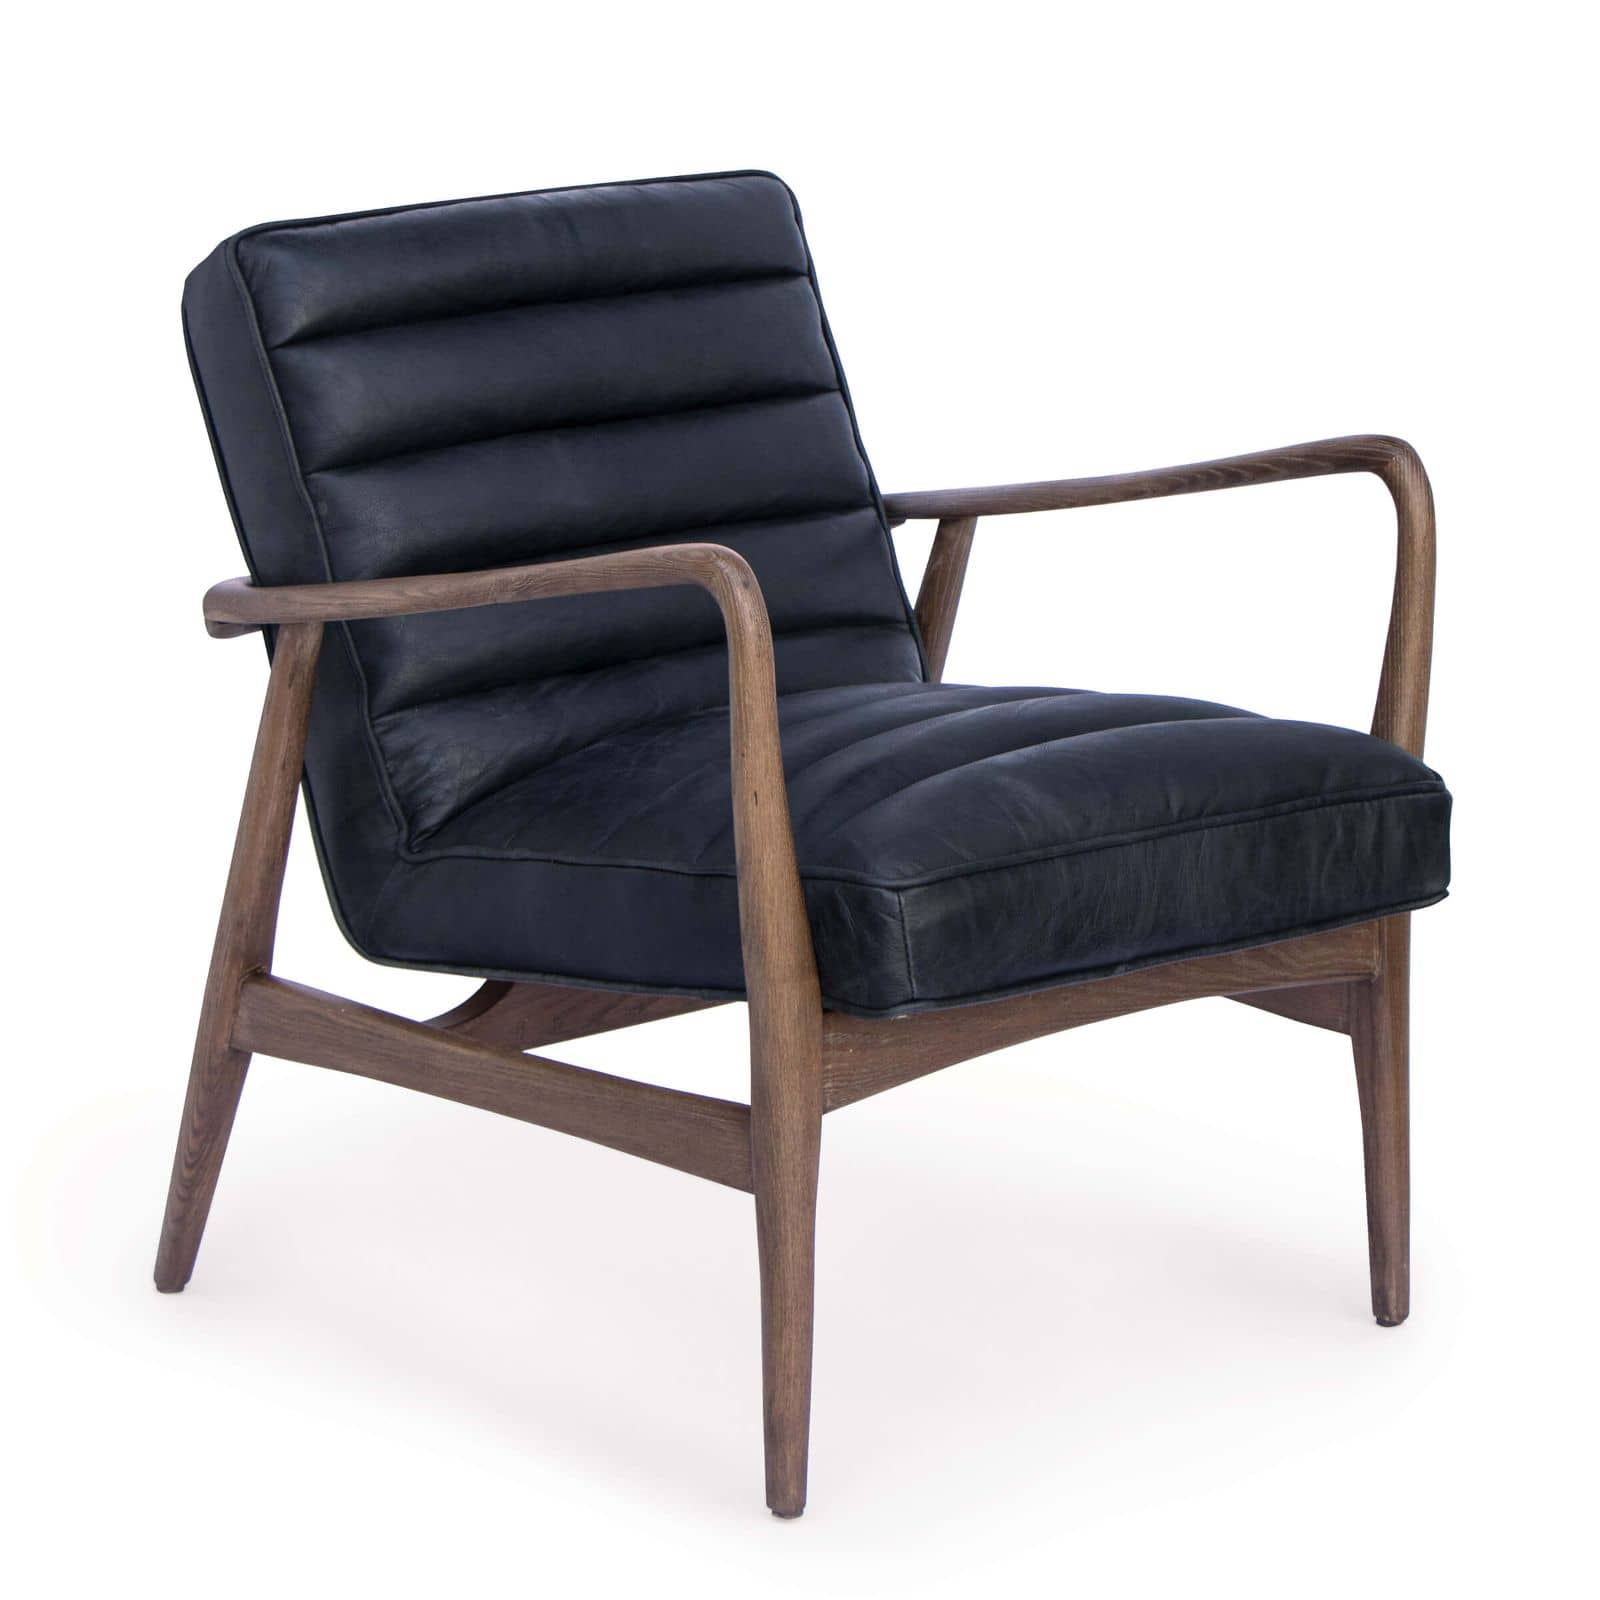 Piper Chair Antique Black Leather | Regina Andrew